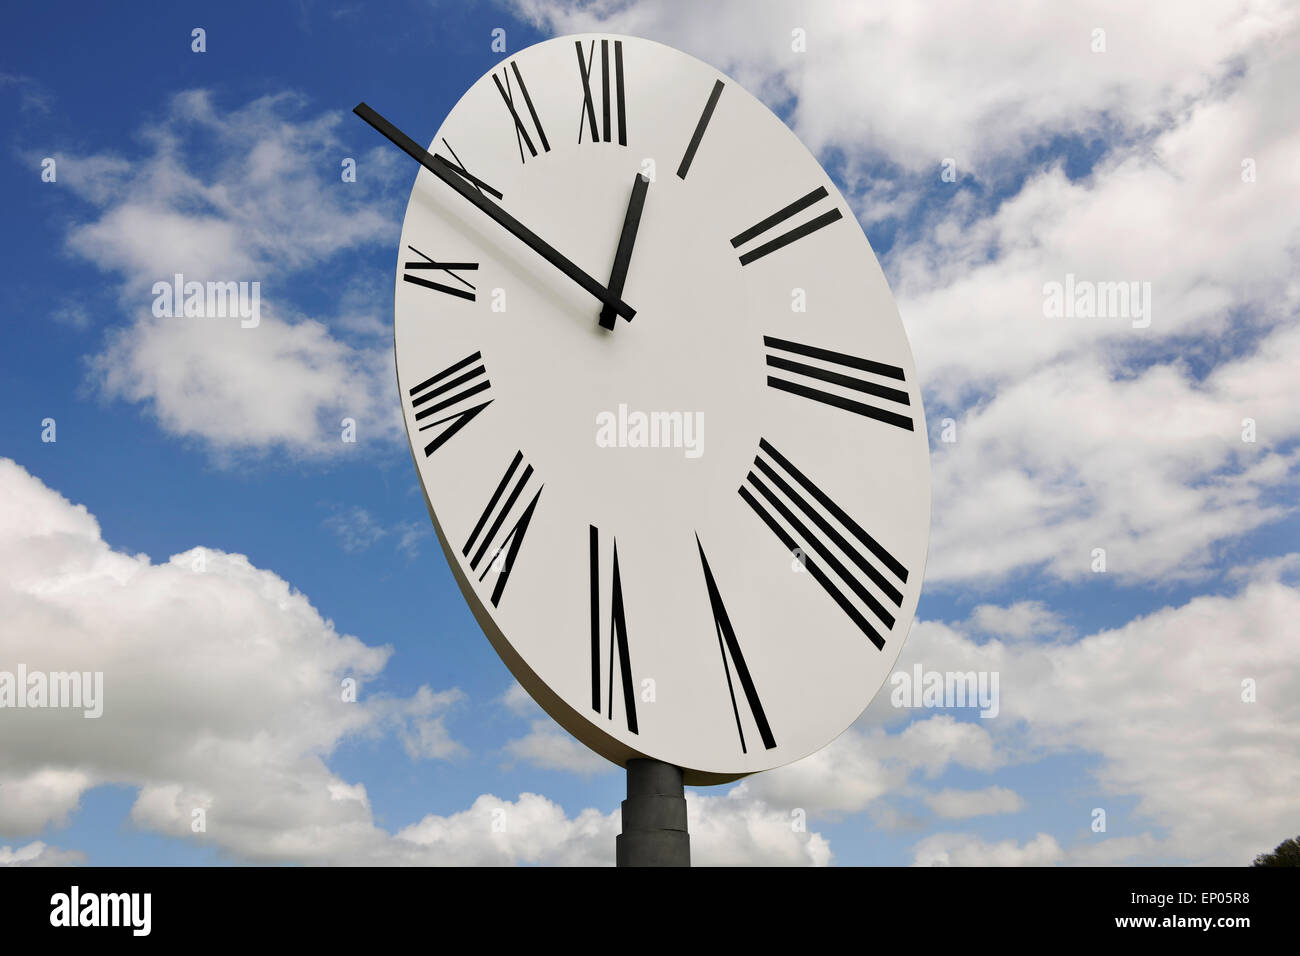 Anri Sala giant oblique clock, Clocked Perspective at Hauser & Wirth art gallery, Bruton, Somerset, UK - Stock Image